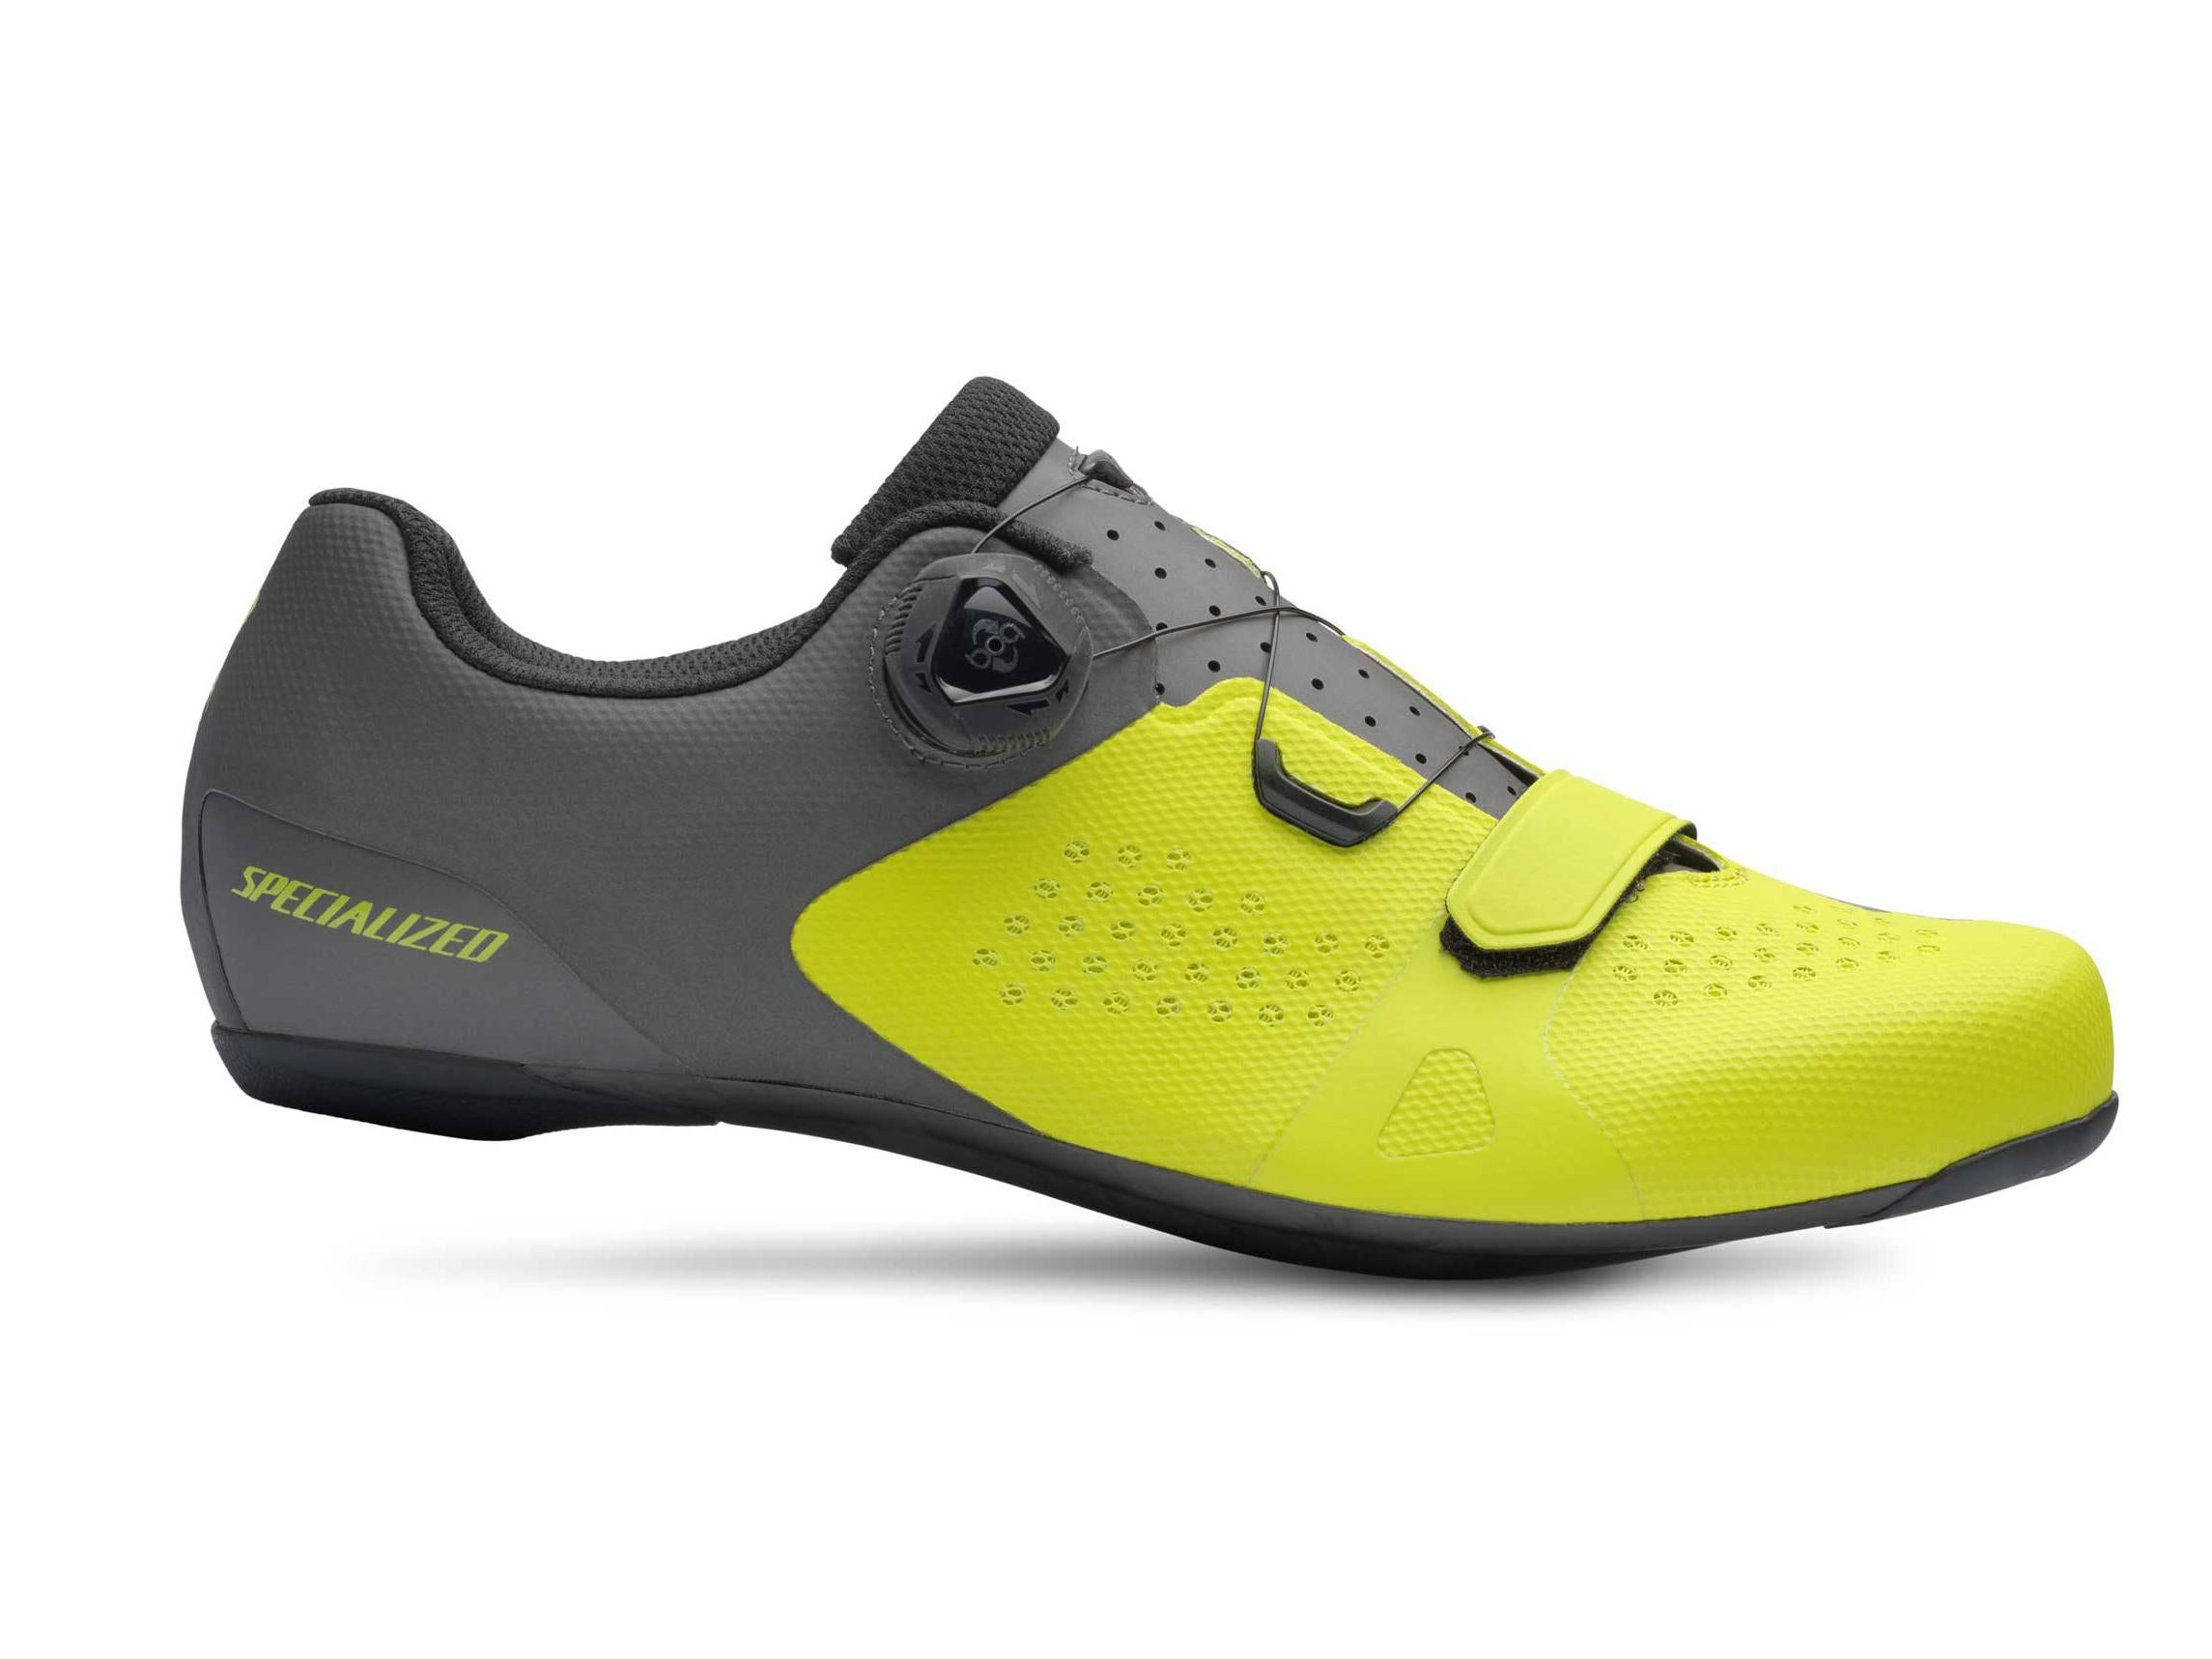 Best ShoesThe Best Cycling 10 10 Independent ShoesThe Cycling vmIYfgyb76